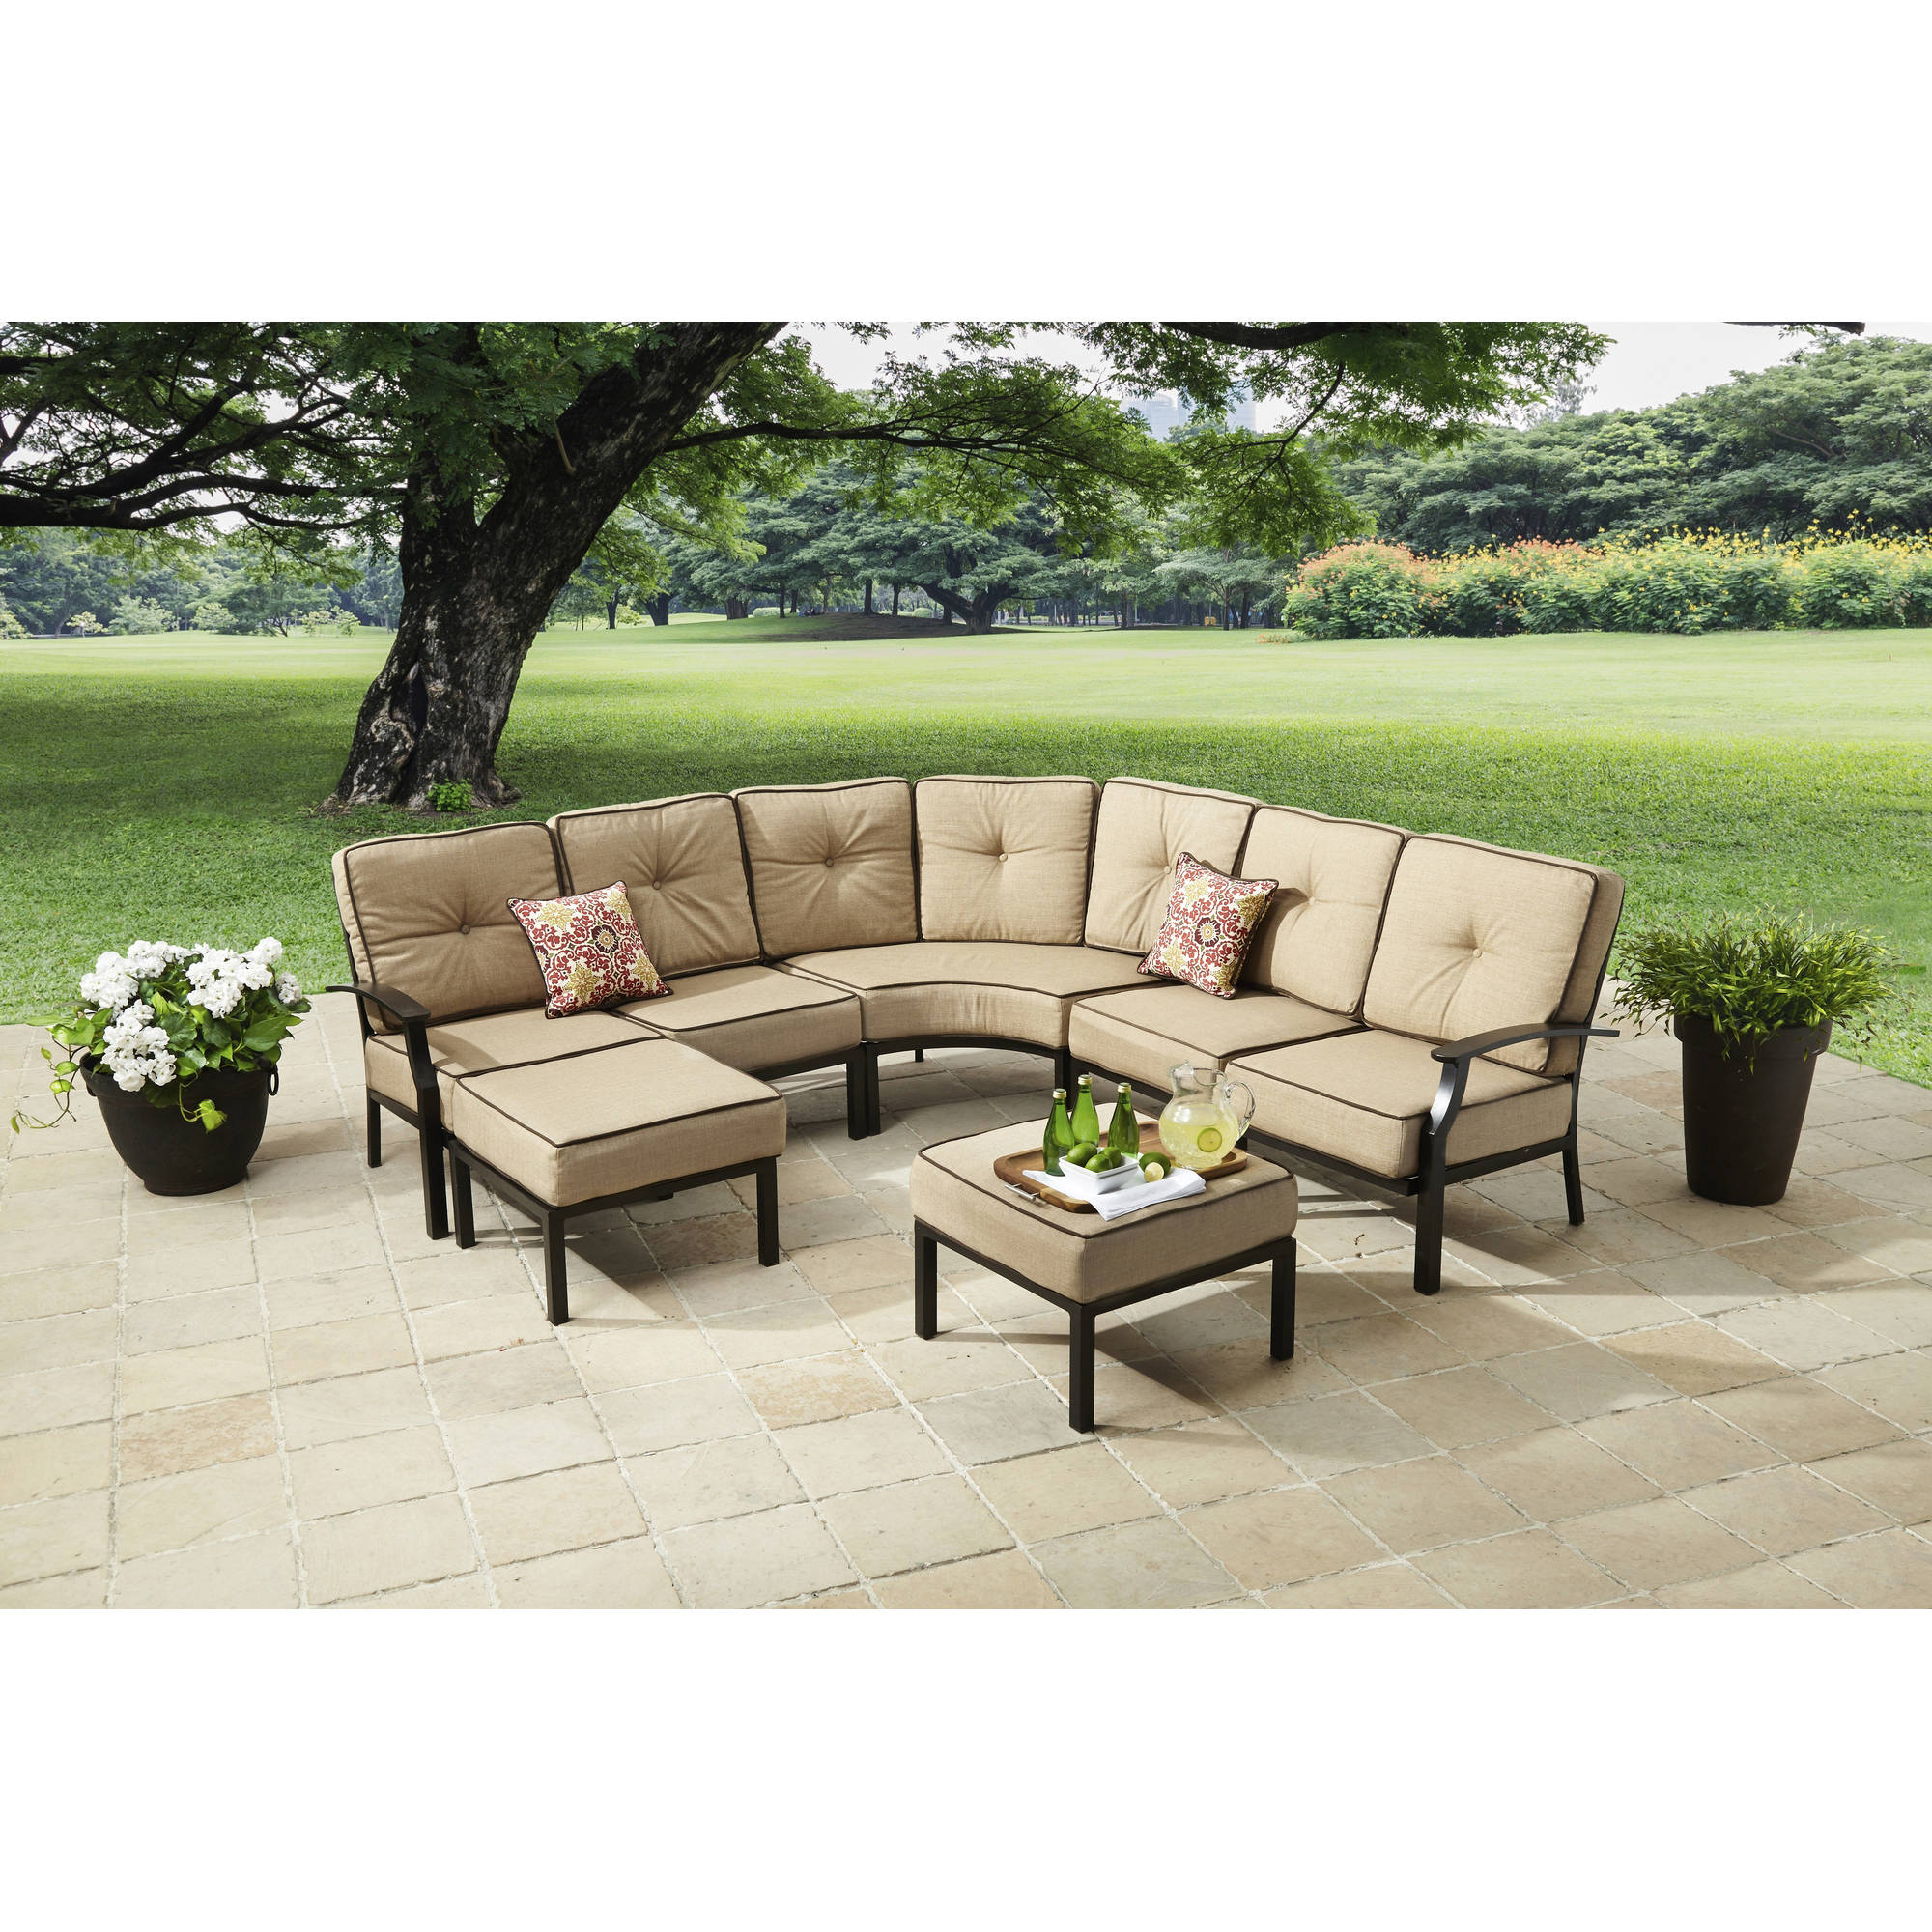 Better Homes And Gardens Carter Hills 7 Piece Outdoor Sectional Sofa Set,  Seats 5